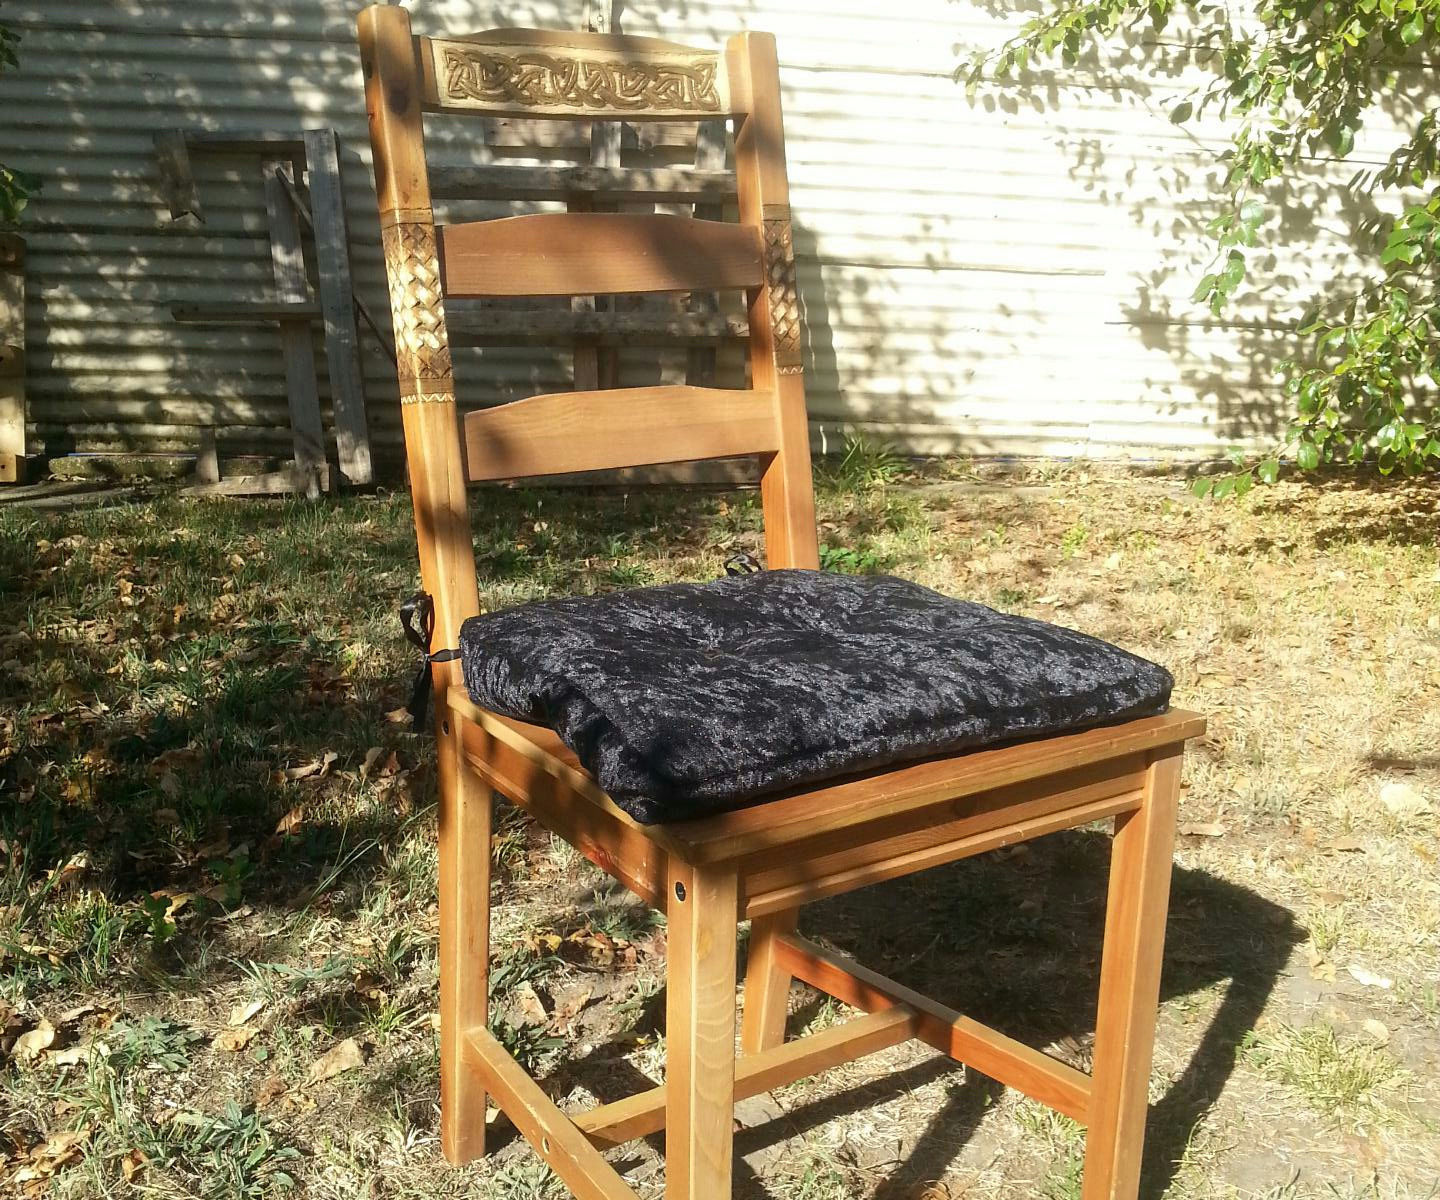 Upcycled Carved & Painted Wood Kitchen Chair